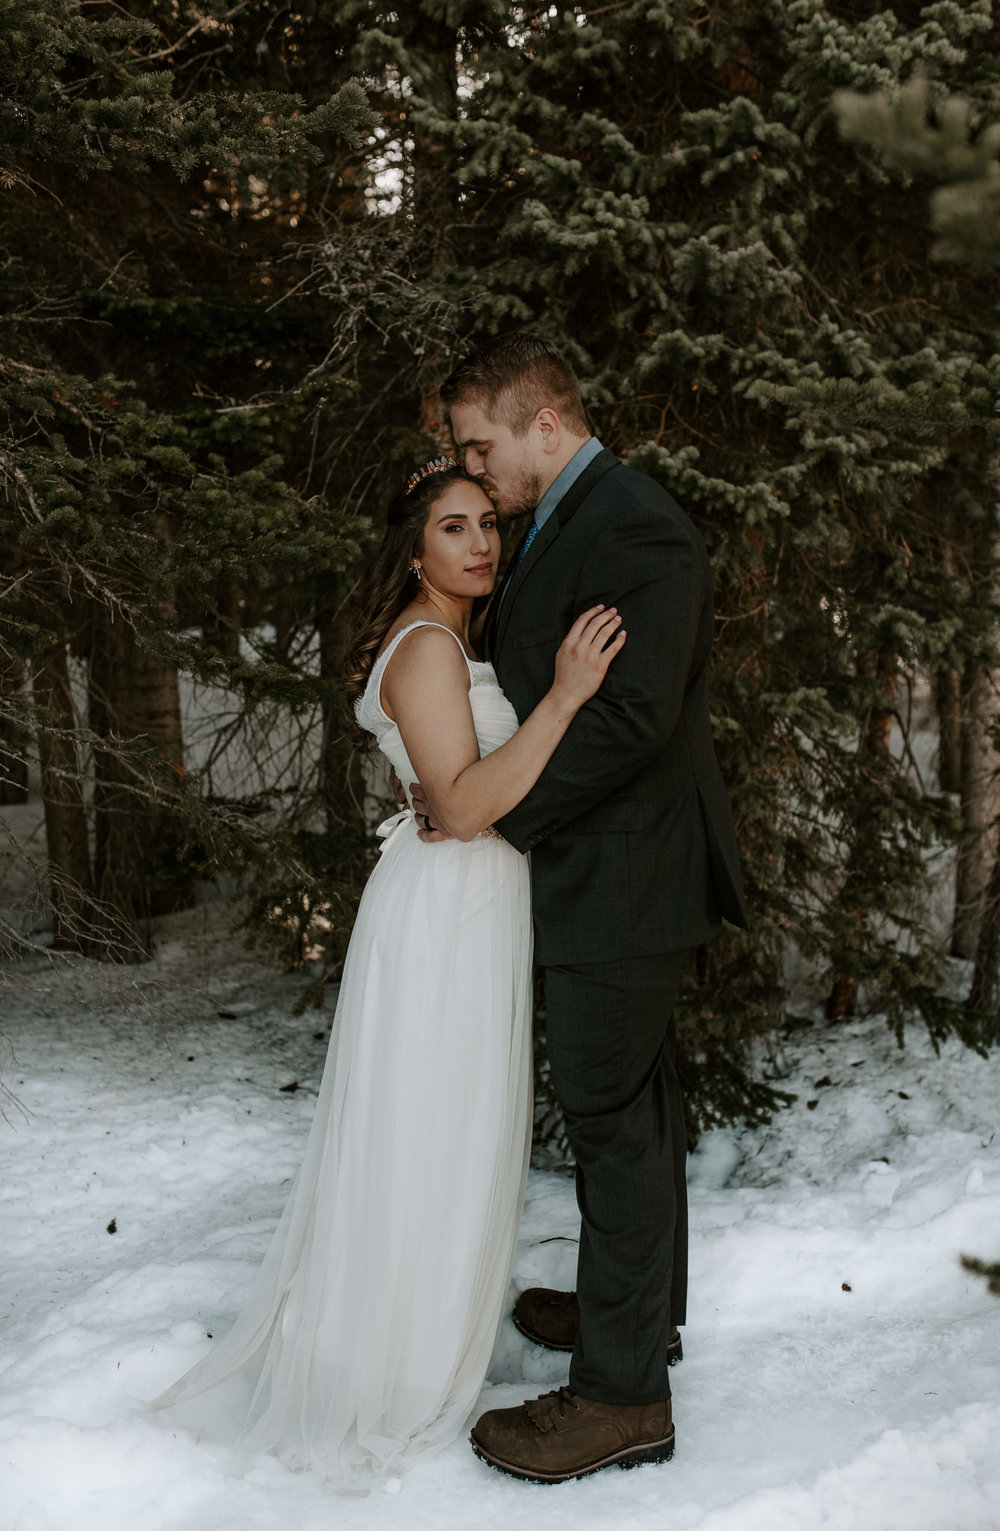 Hiking adventure elopement photographer in Colorado